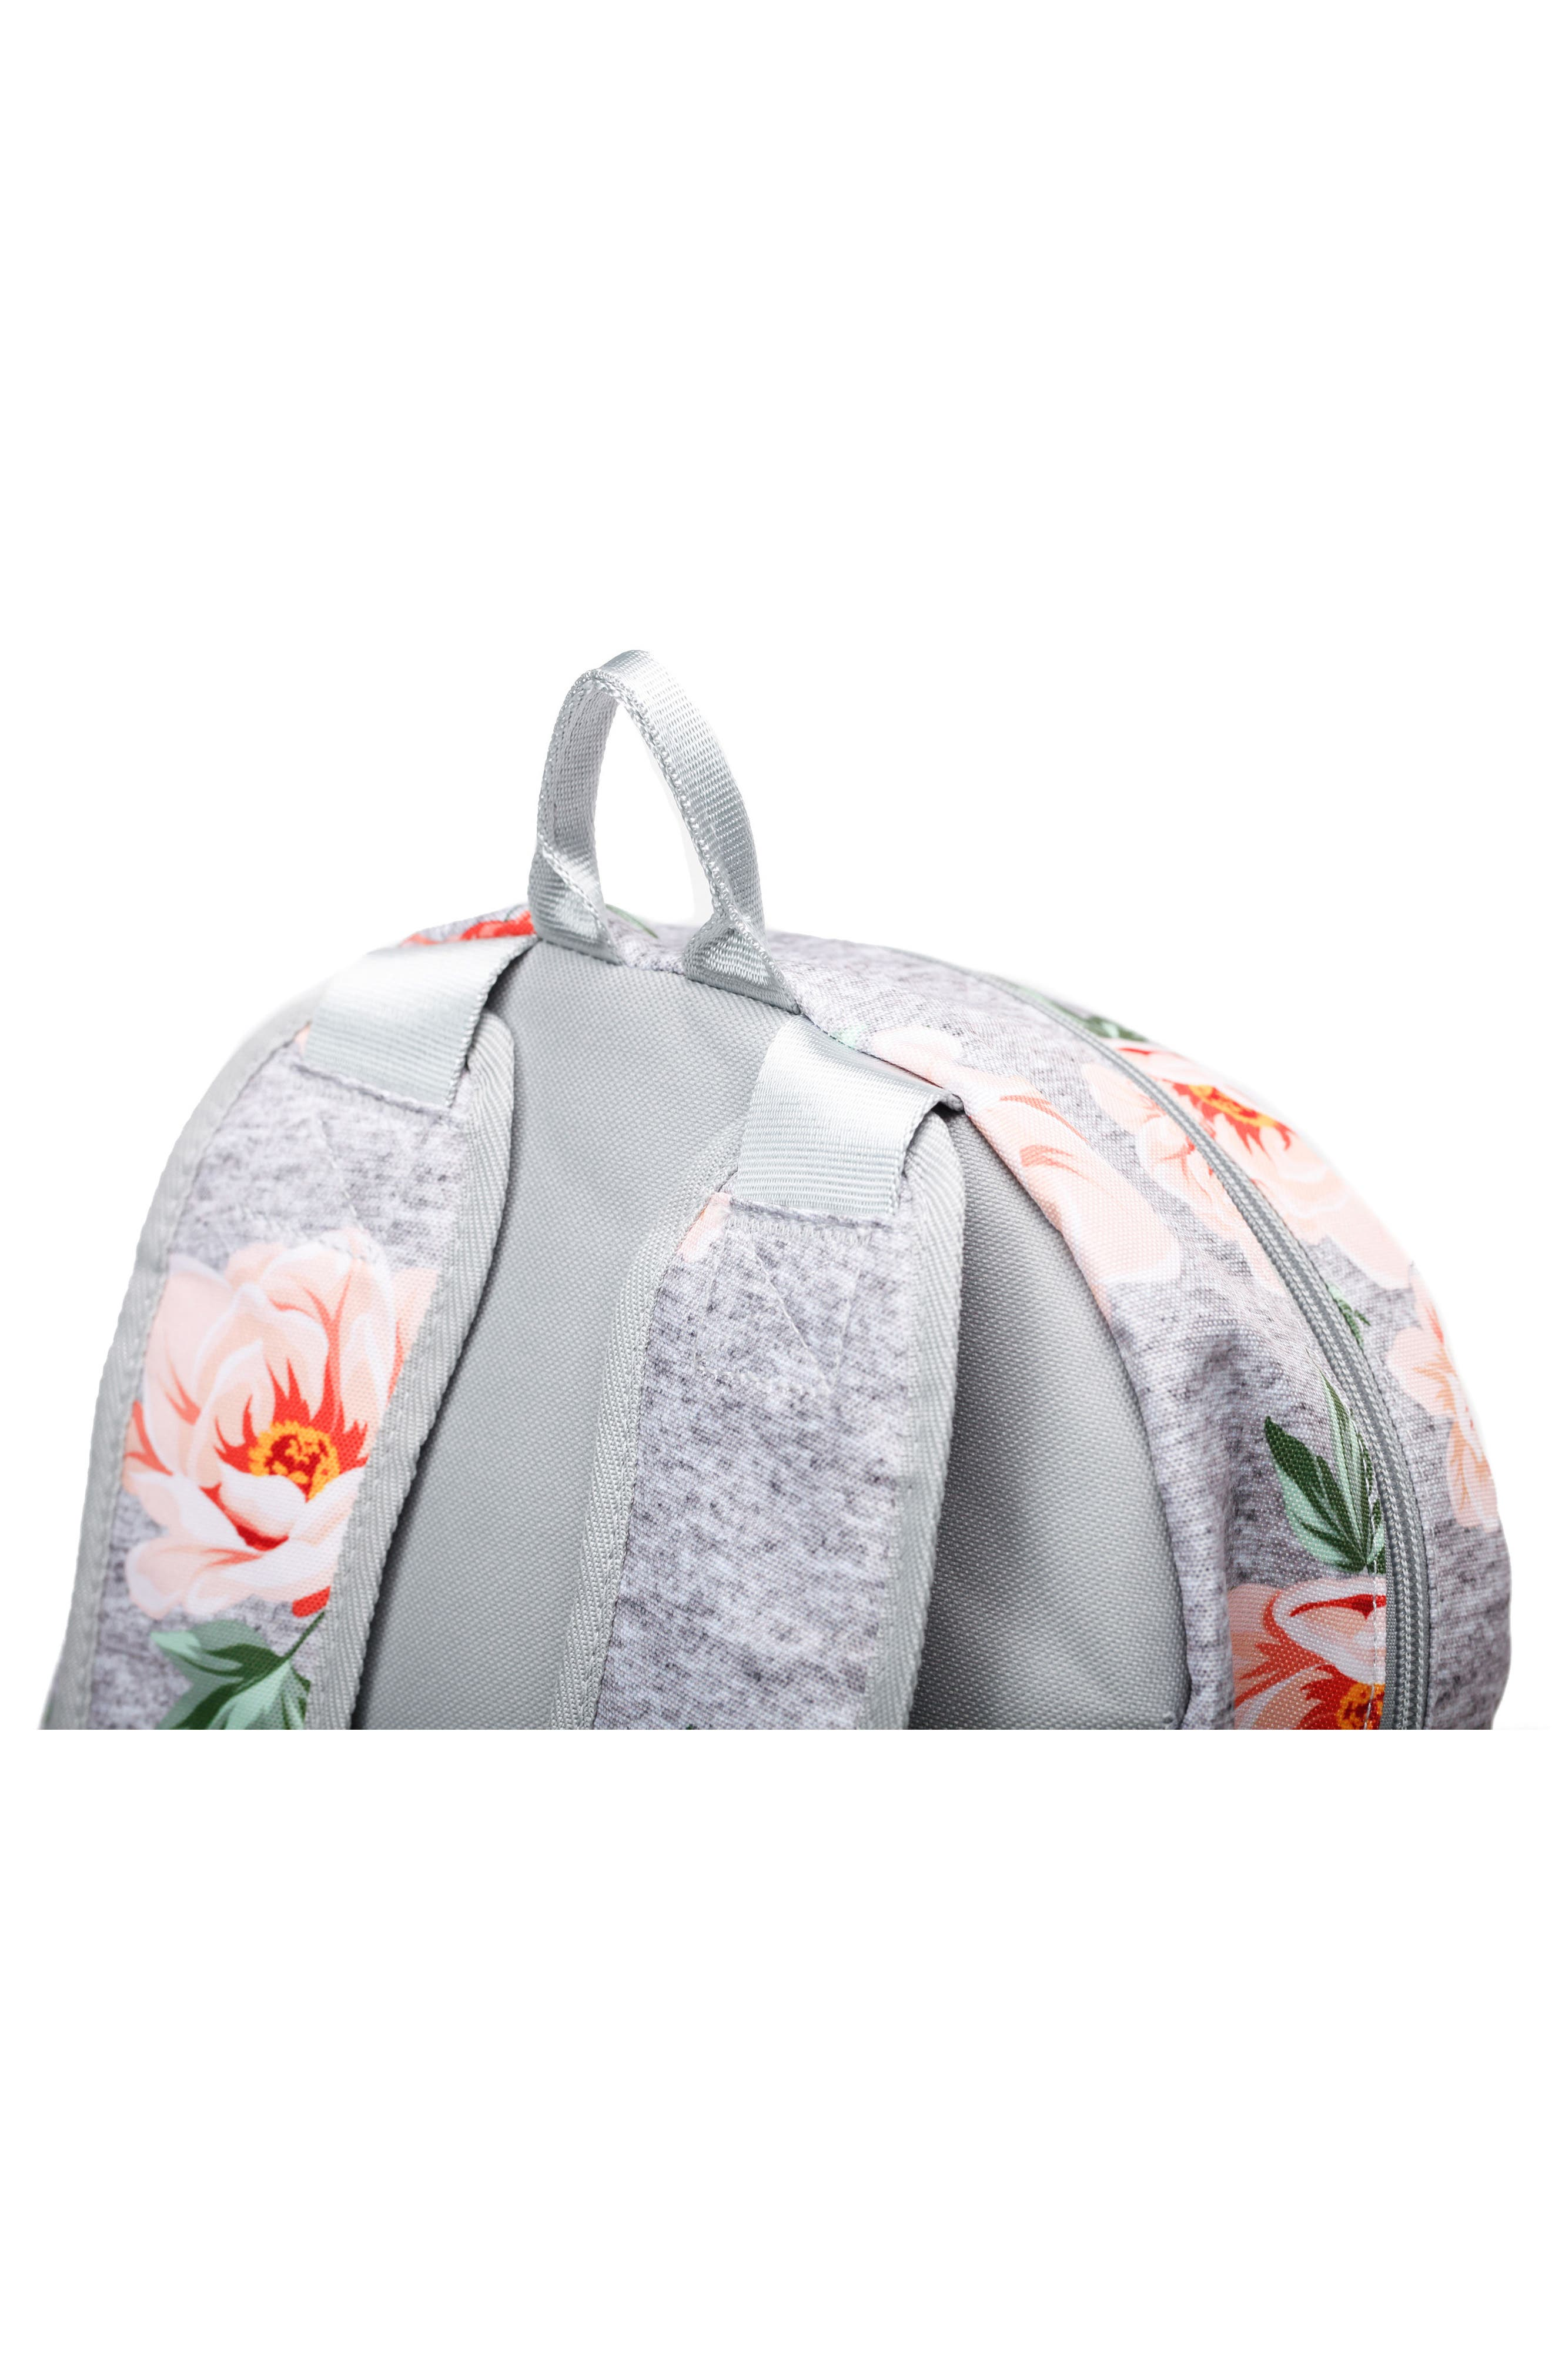 Ace Backpack,                             Alternate thumbnail 5, color,                             Rose Gray